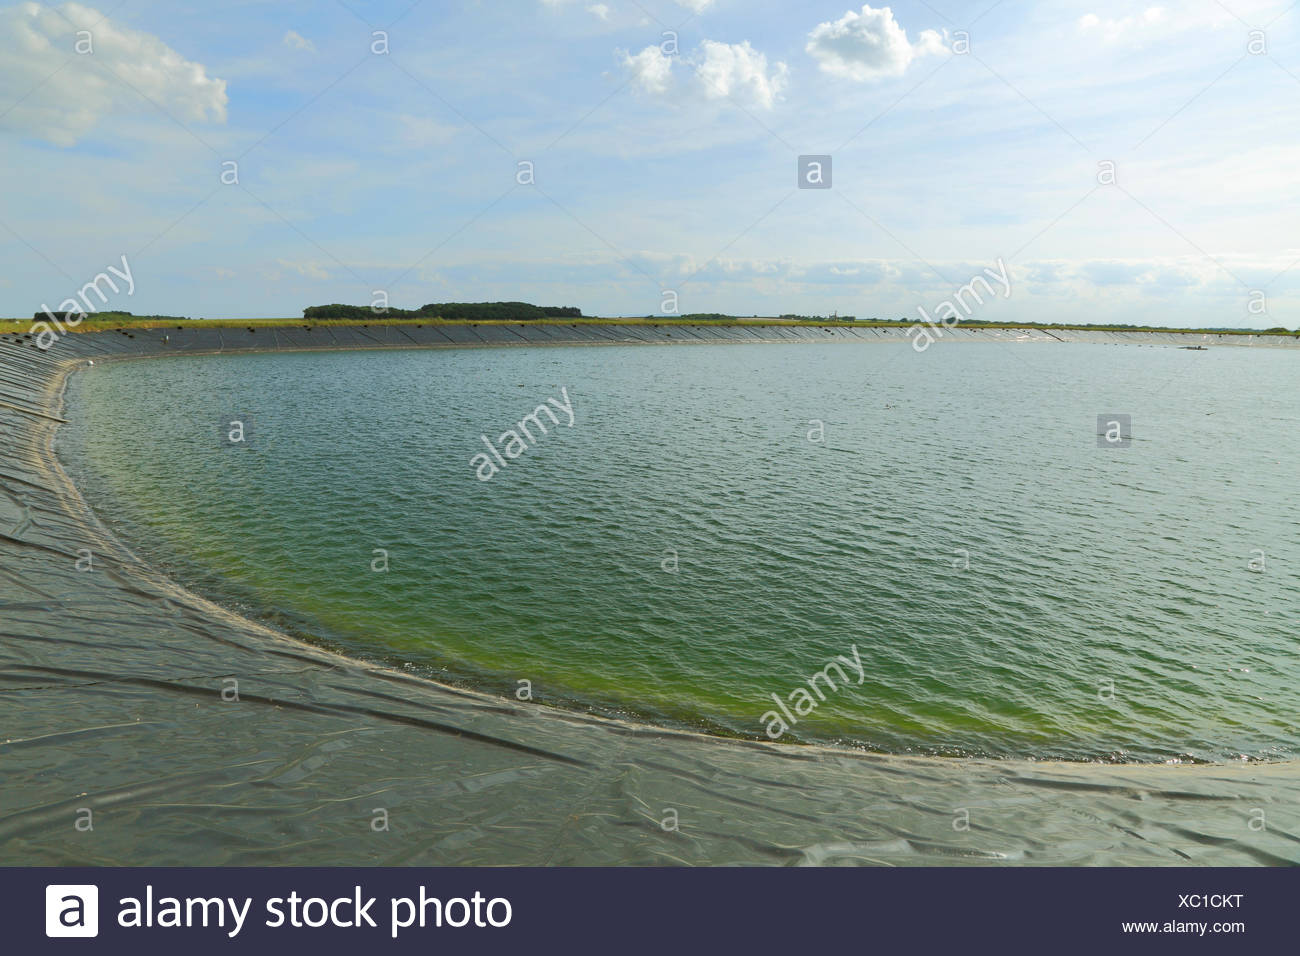 agricultural reservoir, man made, water supply for agriculture, Norfolk, England, UK, crop irrigation reservoirs - Stock Image